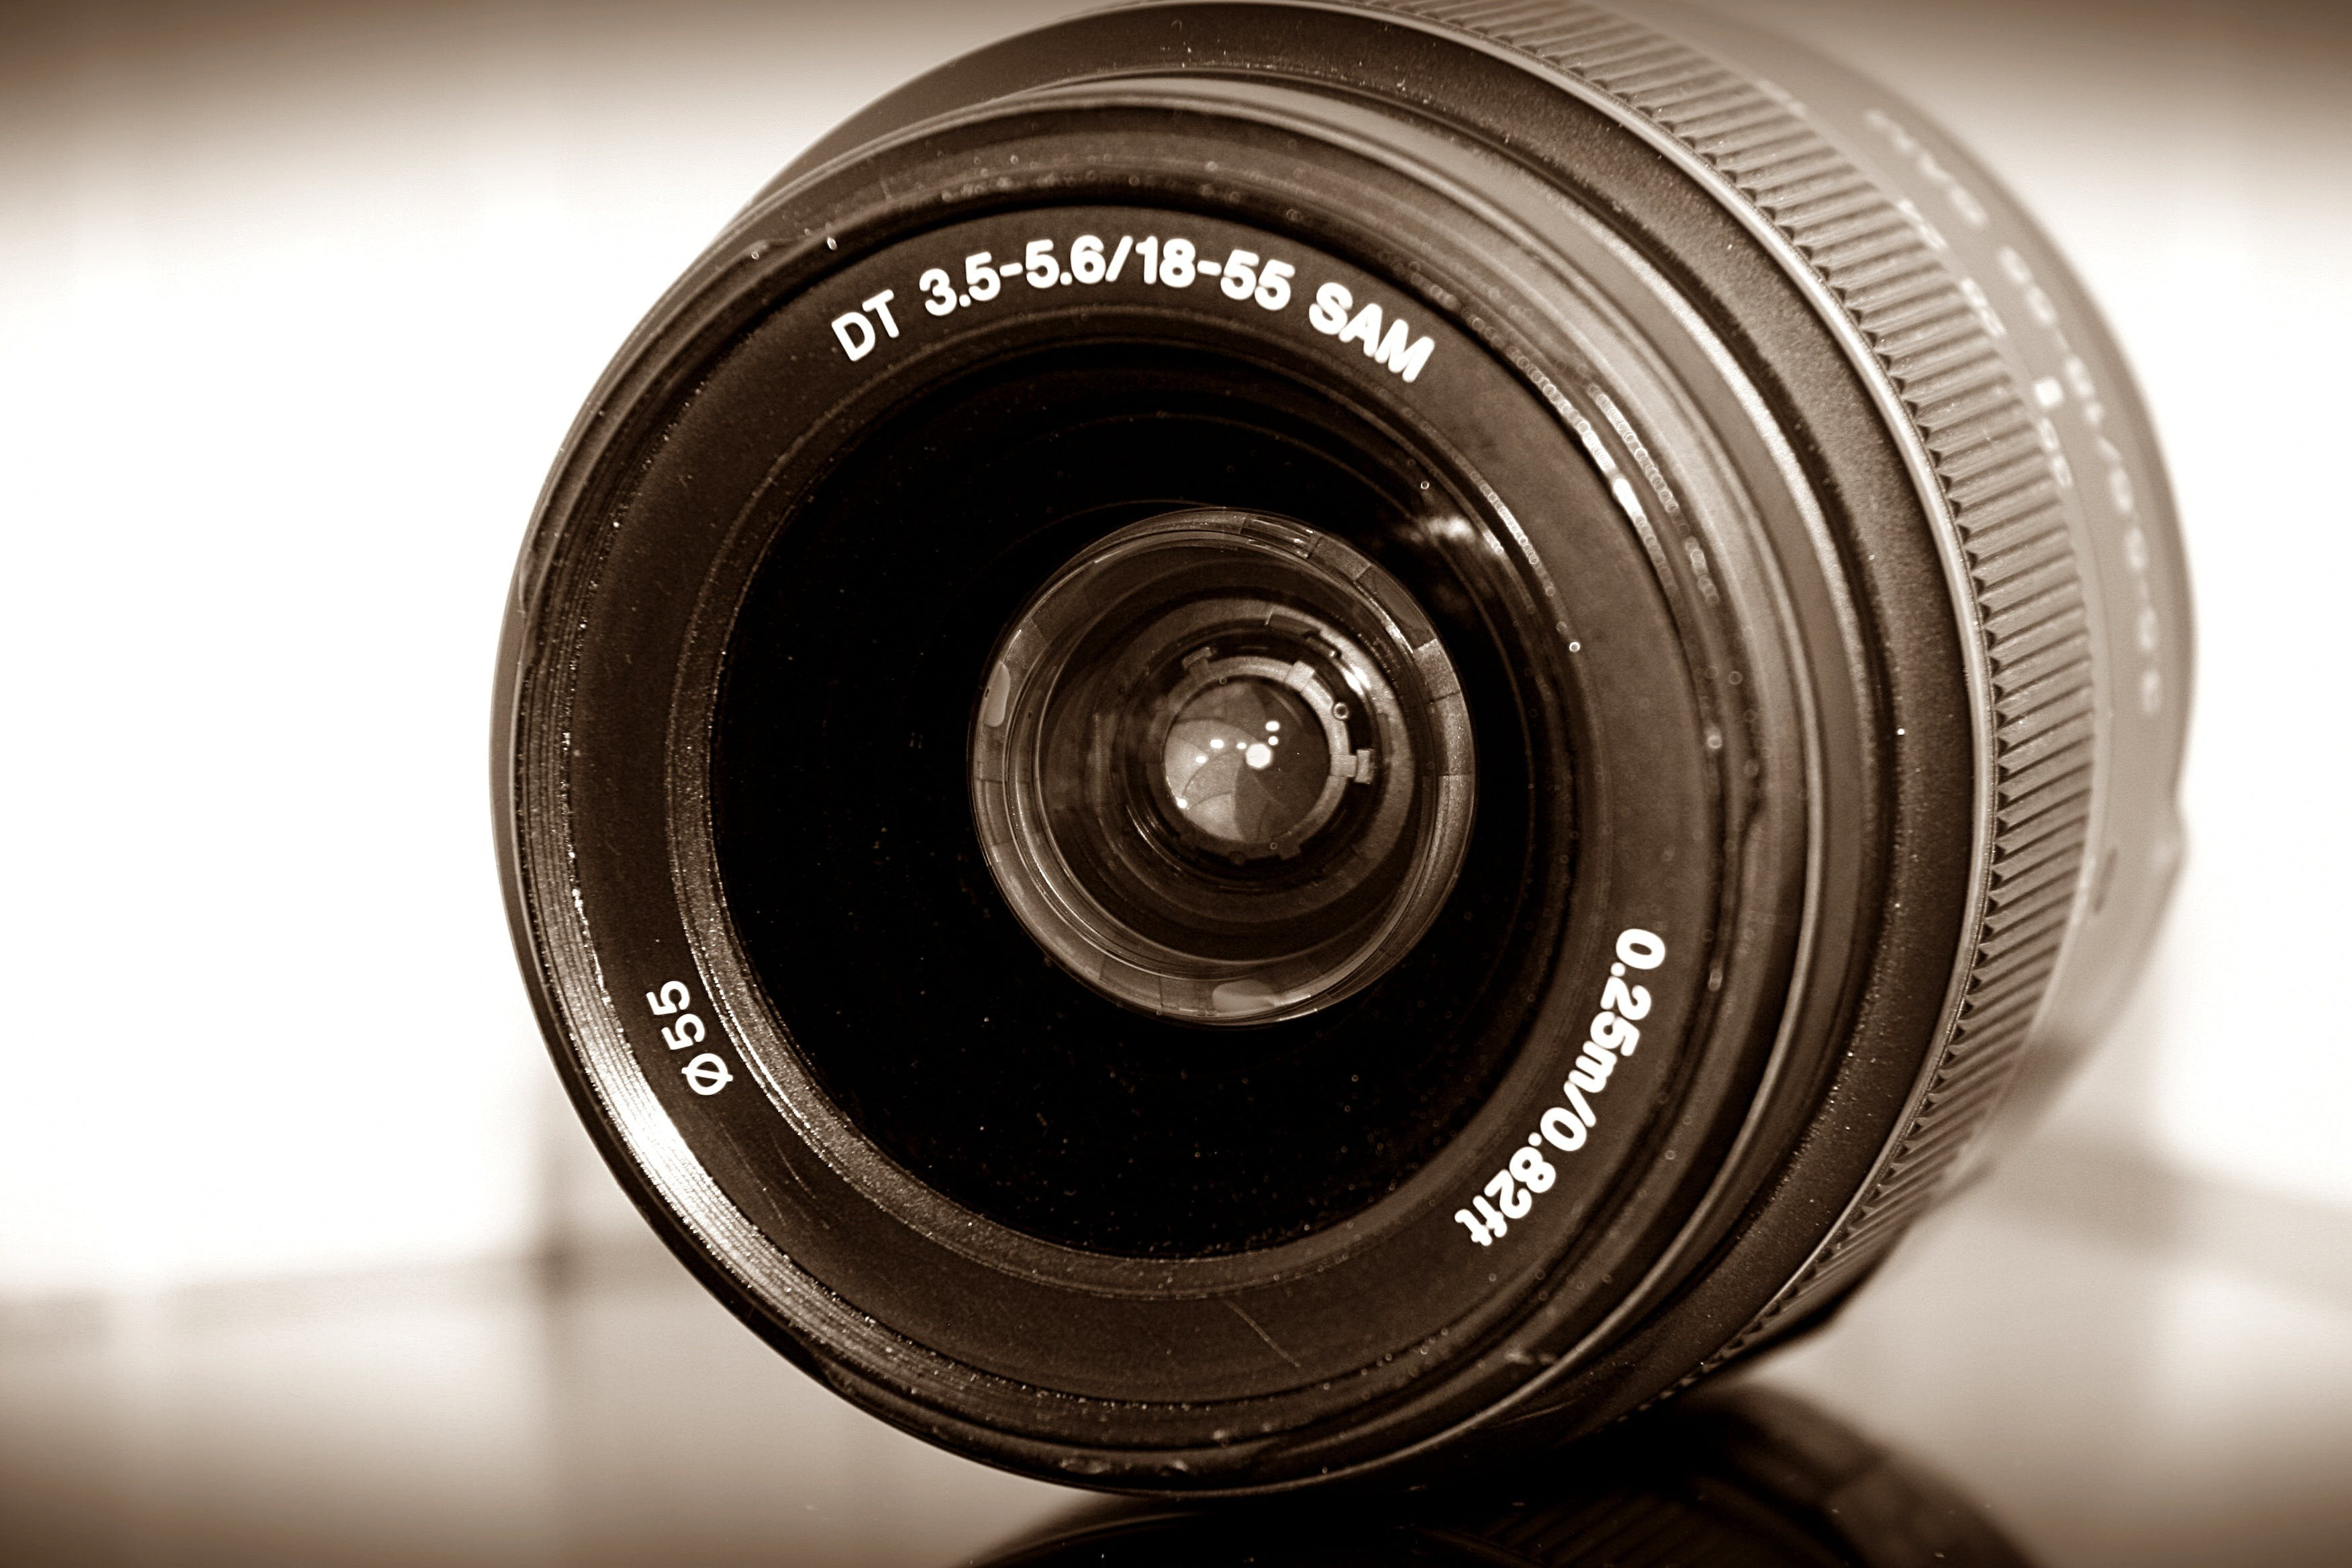 Free stock photo of approach, goal photo, lens, sepia